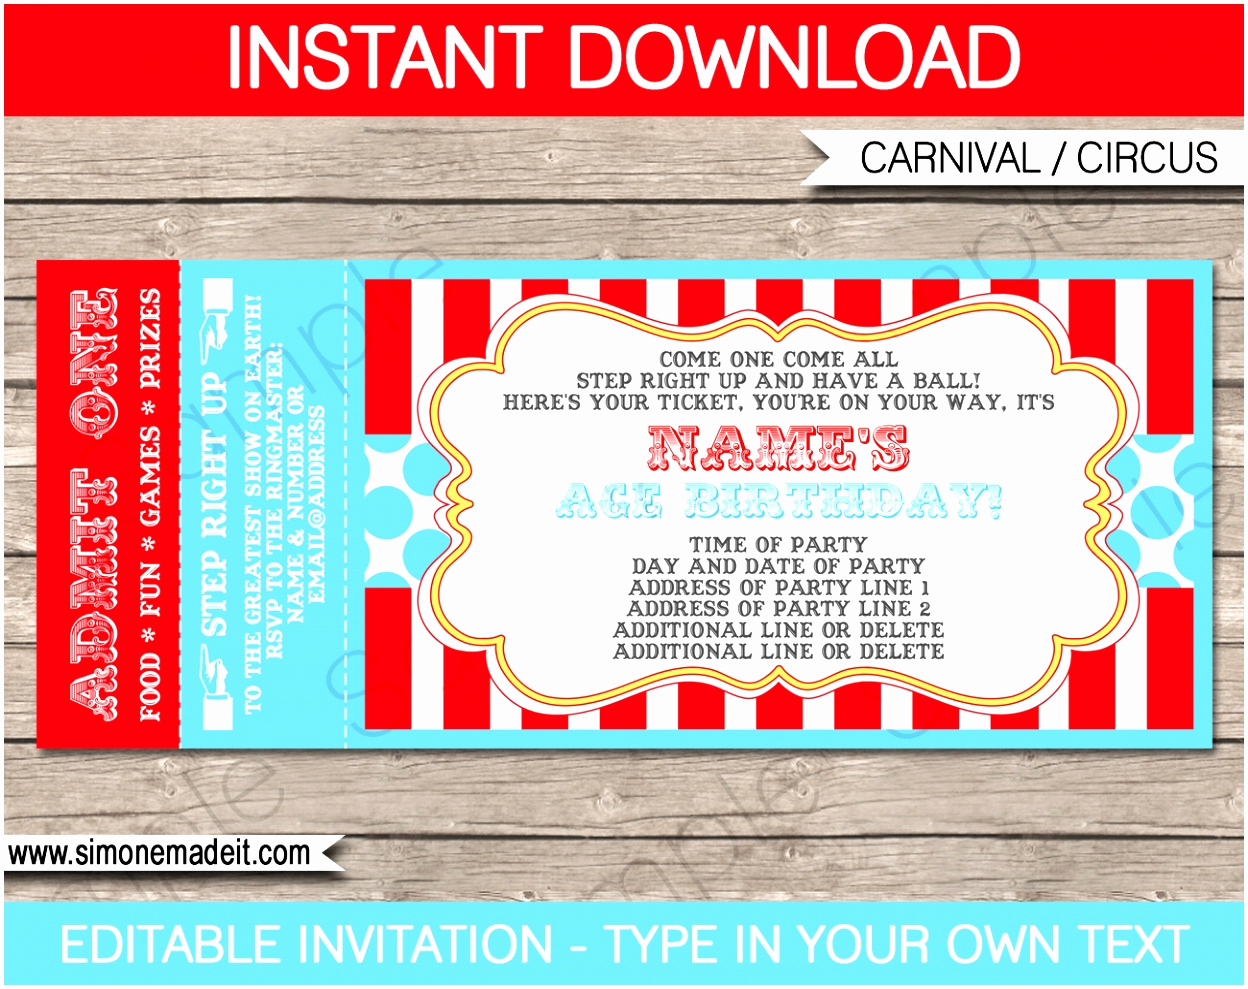 Ticket Invitation Template Free Fresh 12 Carnival Ticket Invitation Template Prwtv